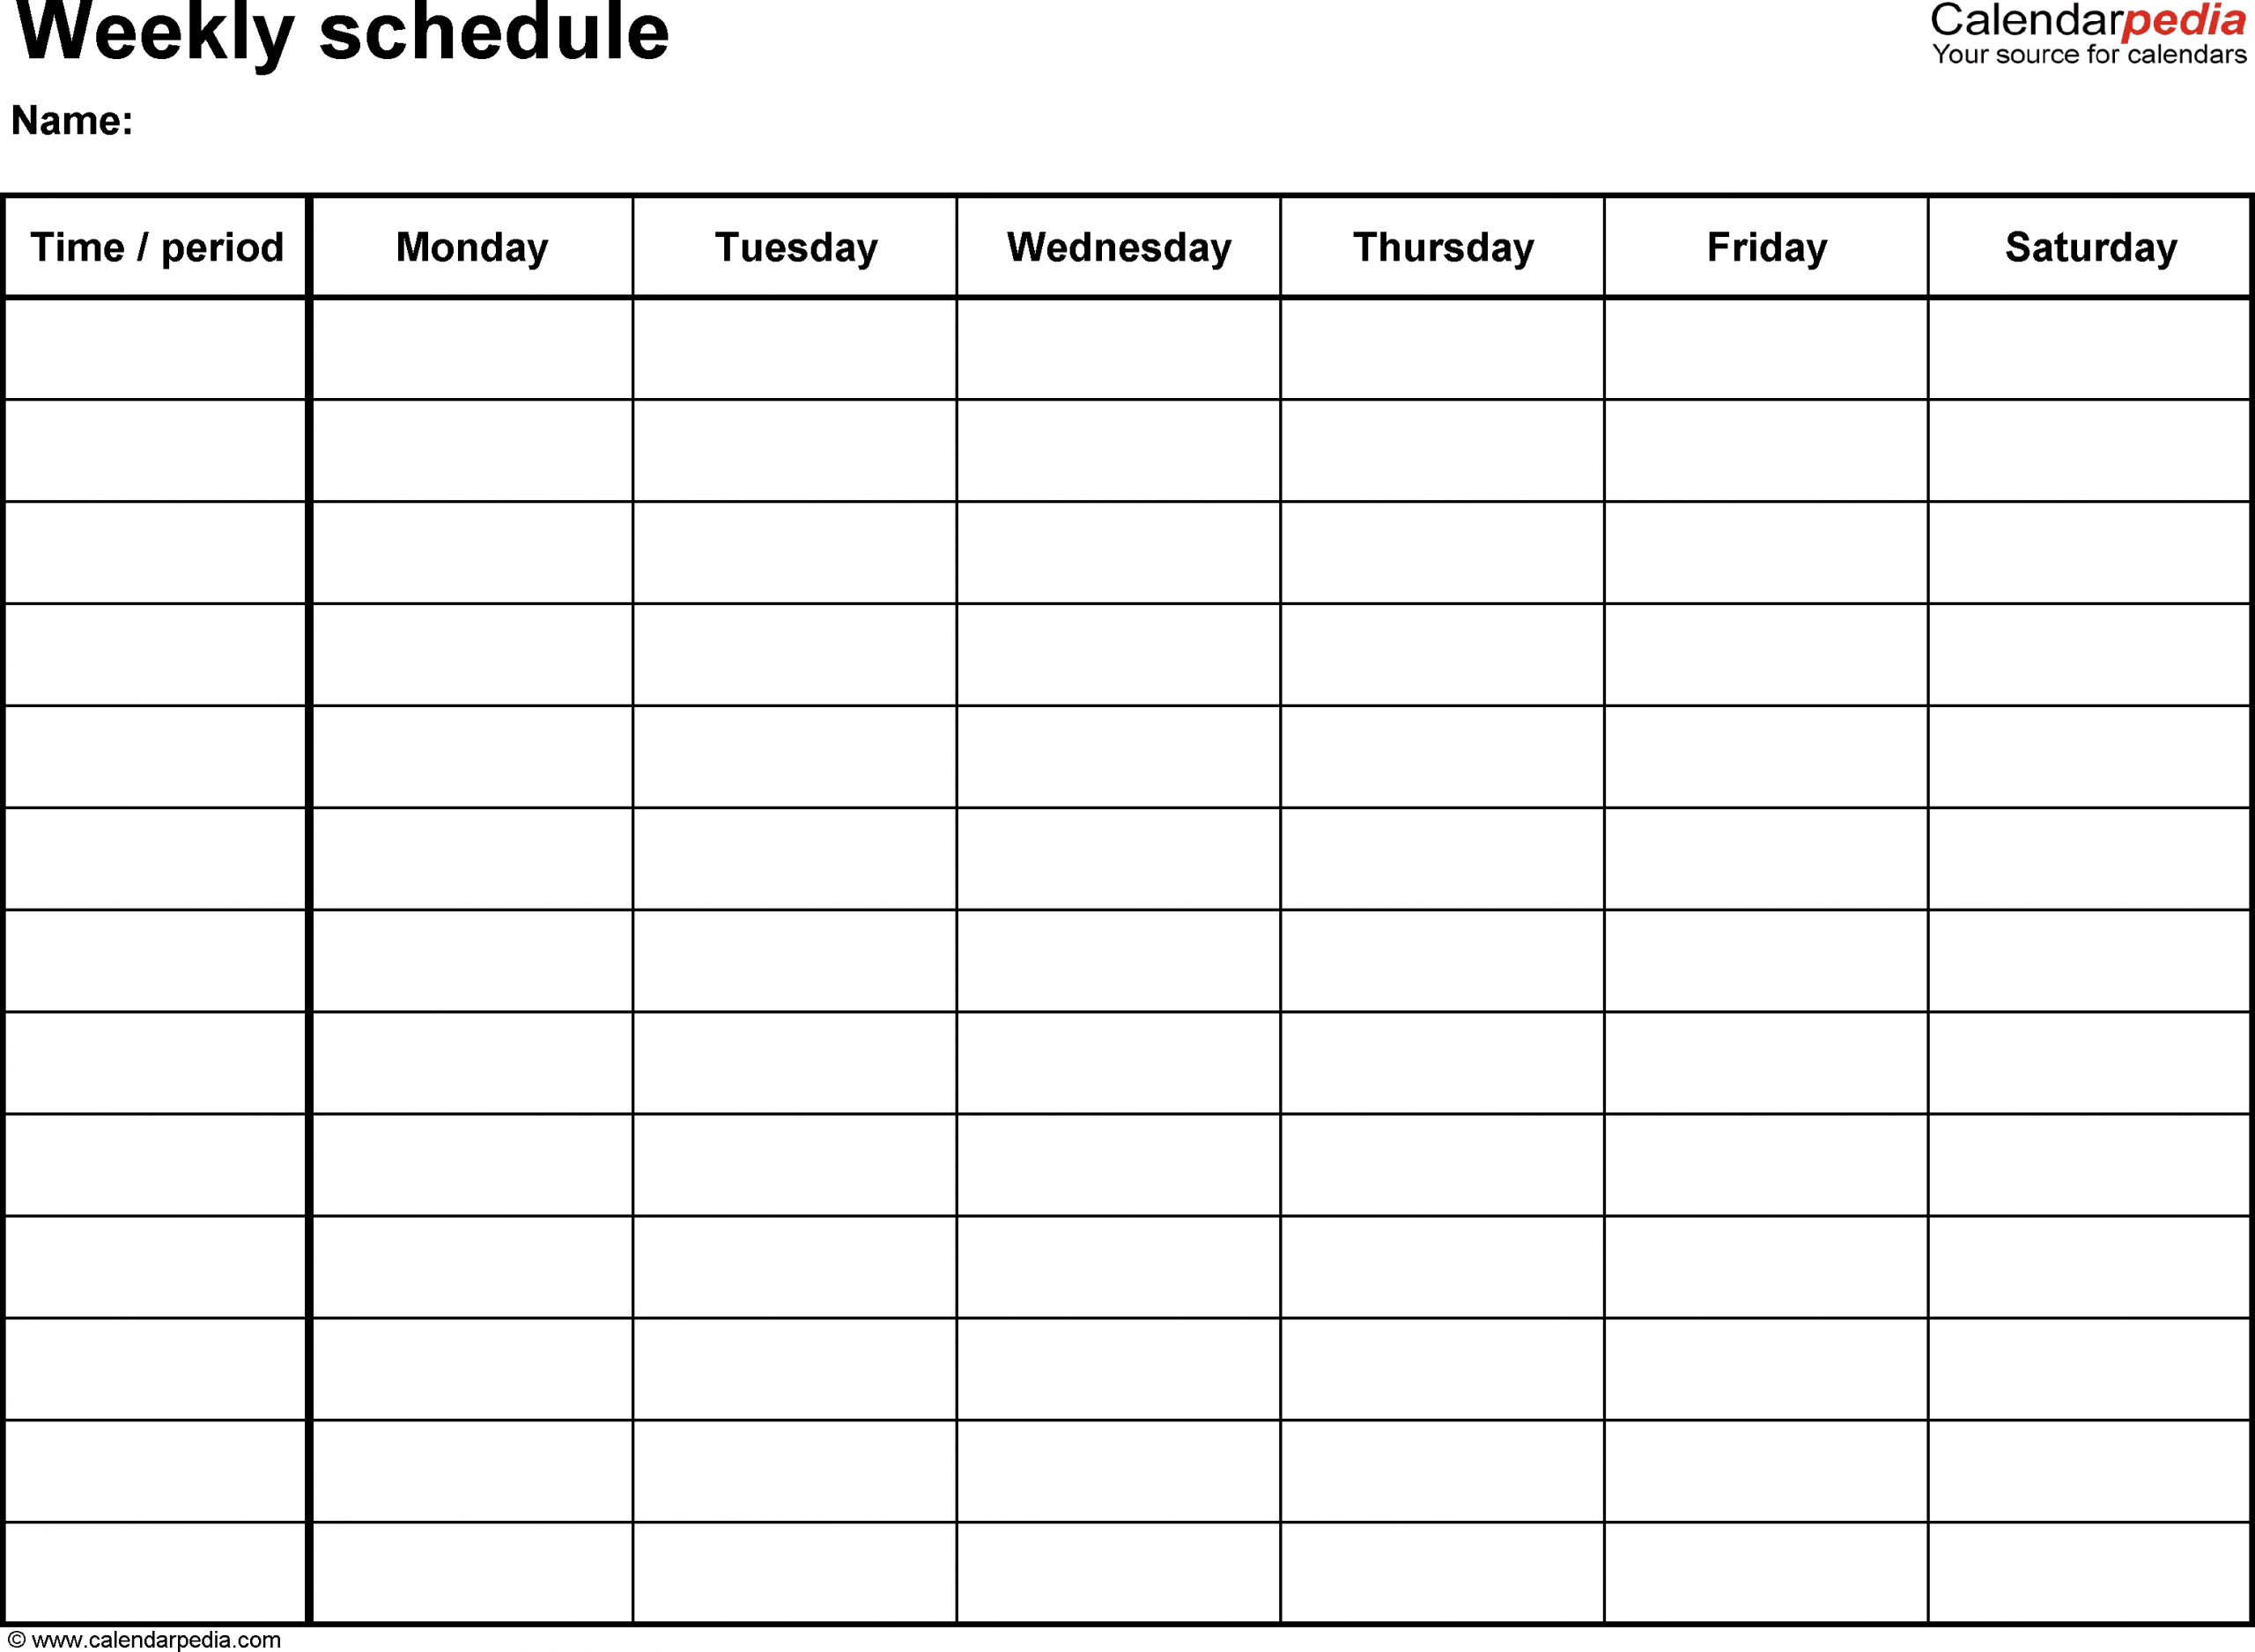 Printable Weekly Calendar With 15 Minute Time Slots Fillable Blank Calendar Template